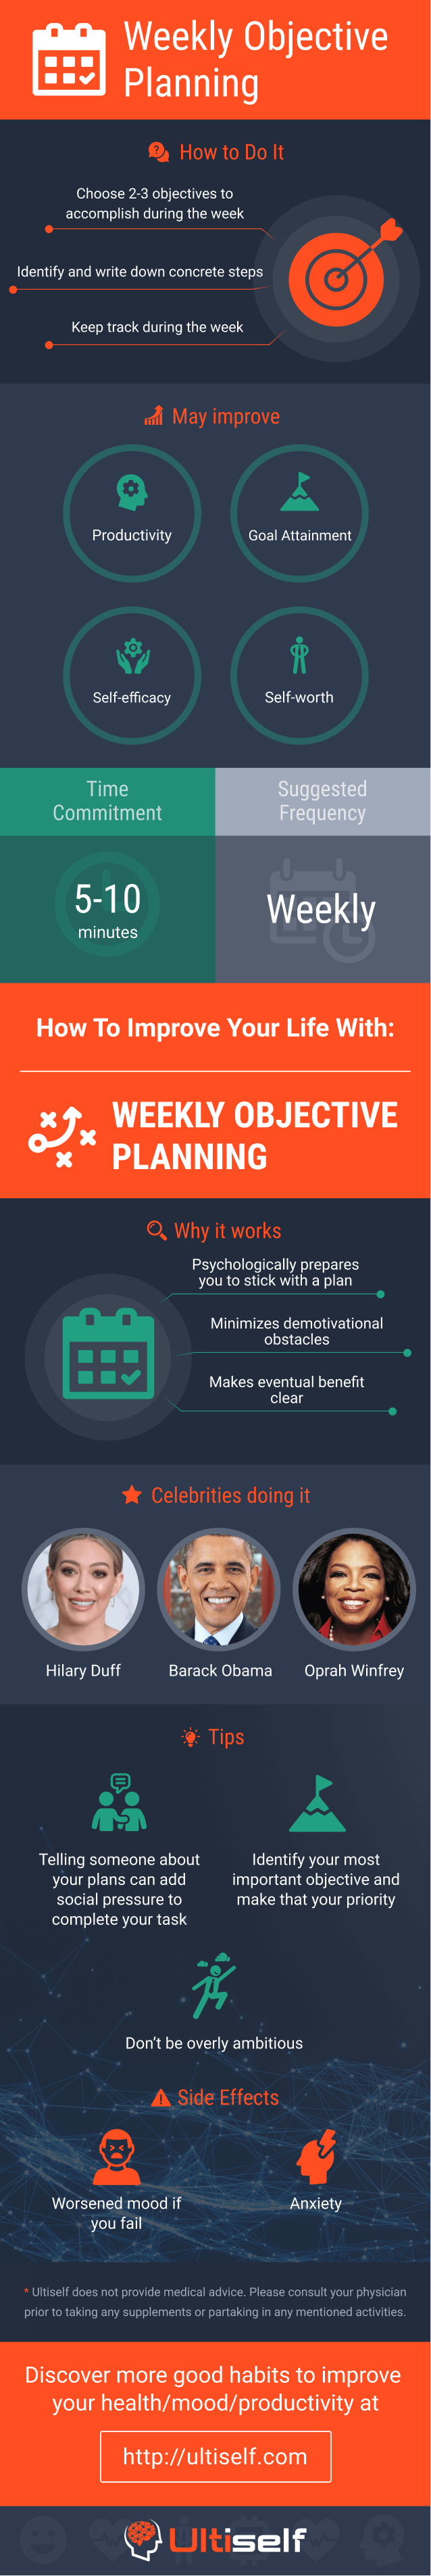 Weekly Objective Planning infographic